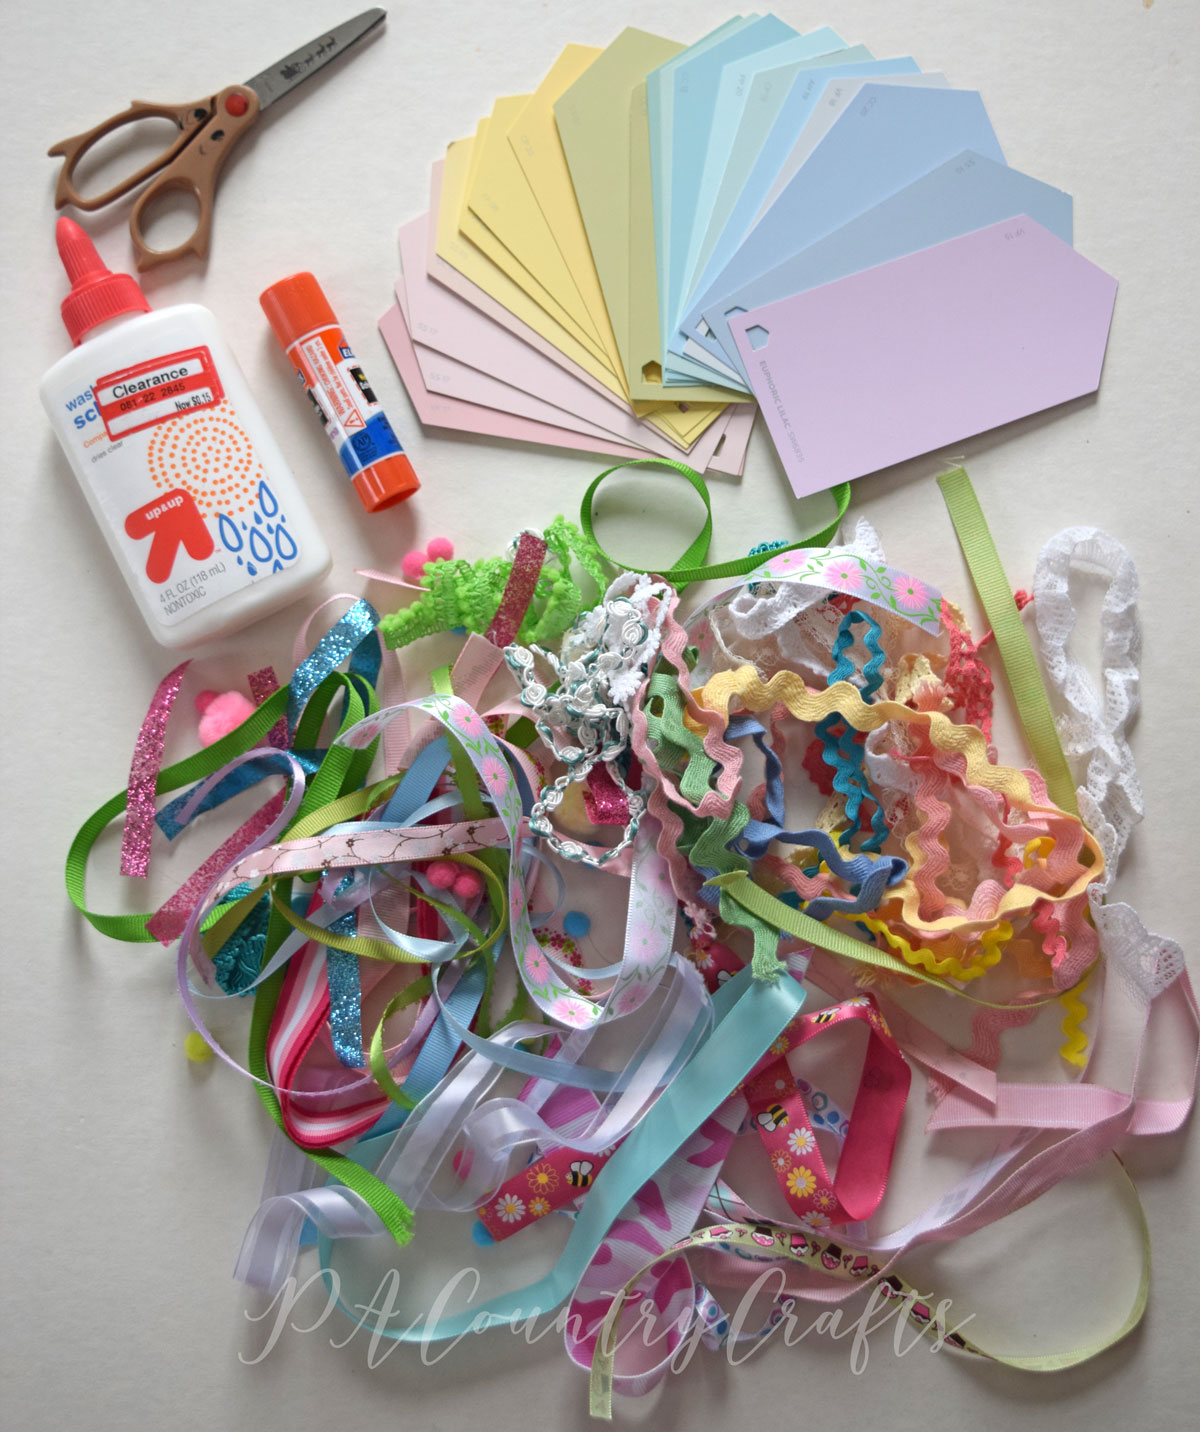 Busy bag Easter egg preschool craft idea using paint chips and ribbon scraps